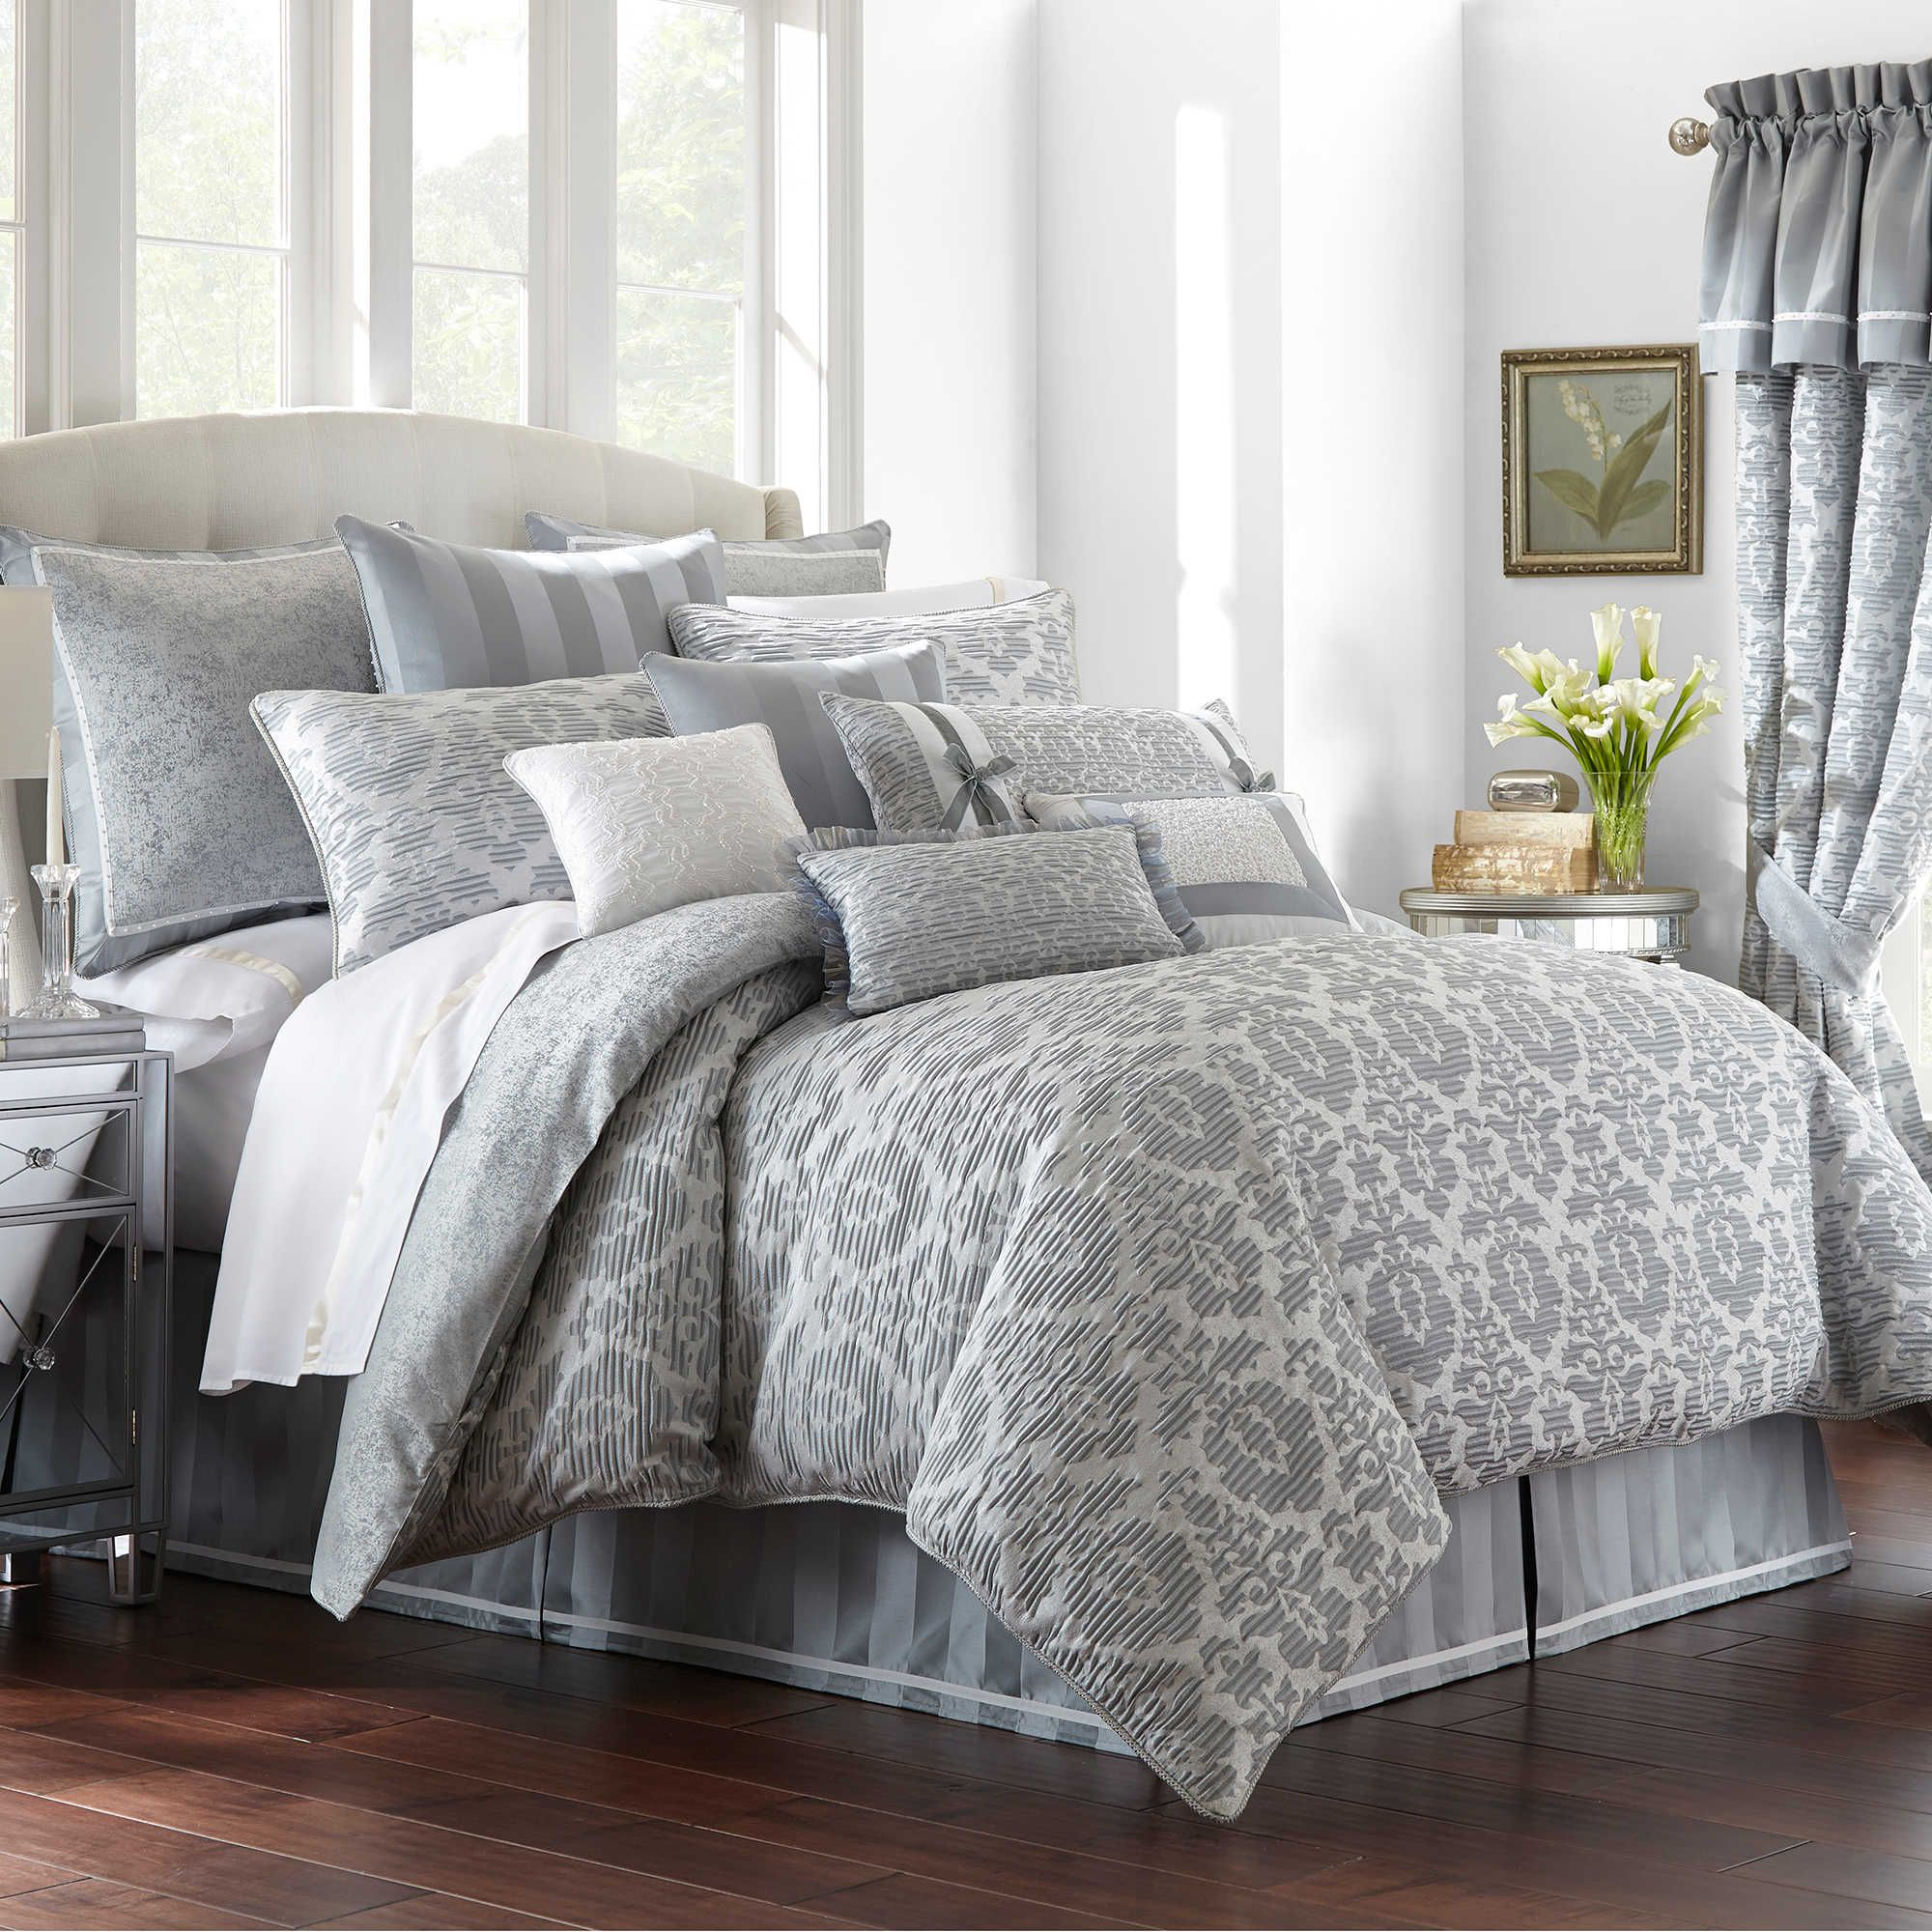 isabella set bedding comforter waterford p gold by from marquis